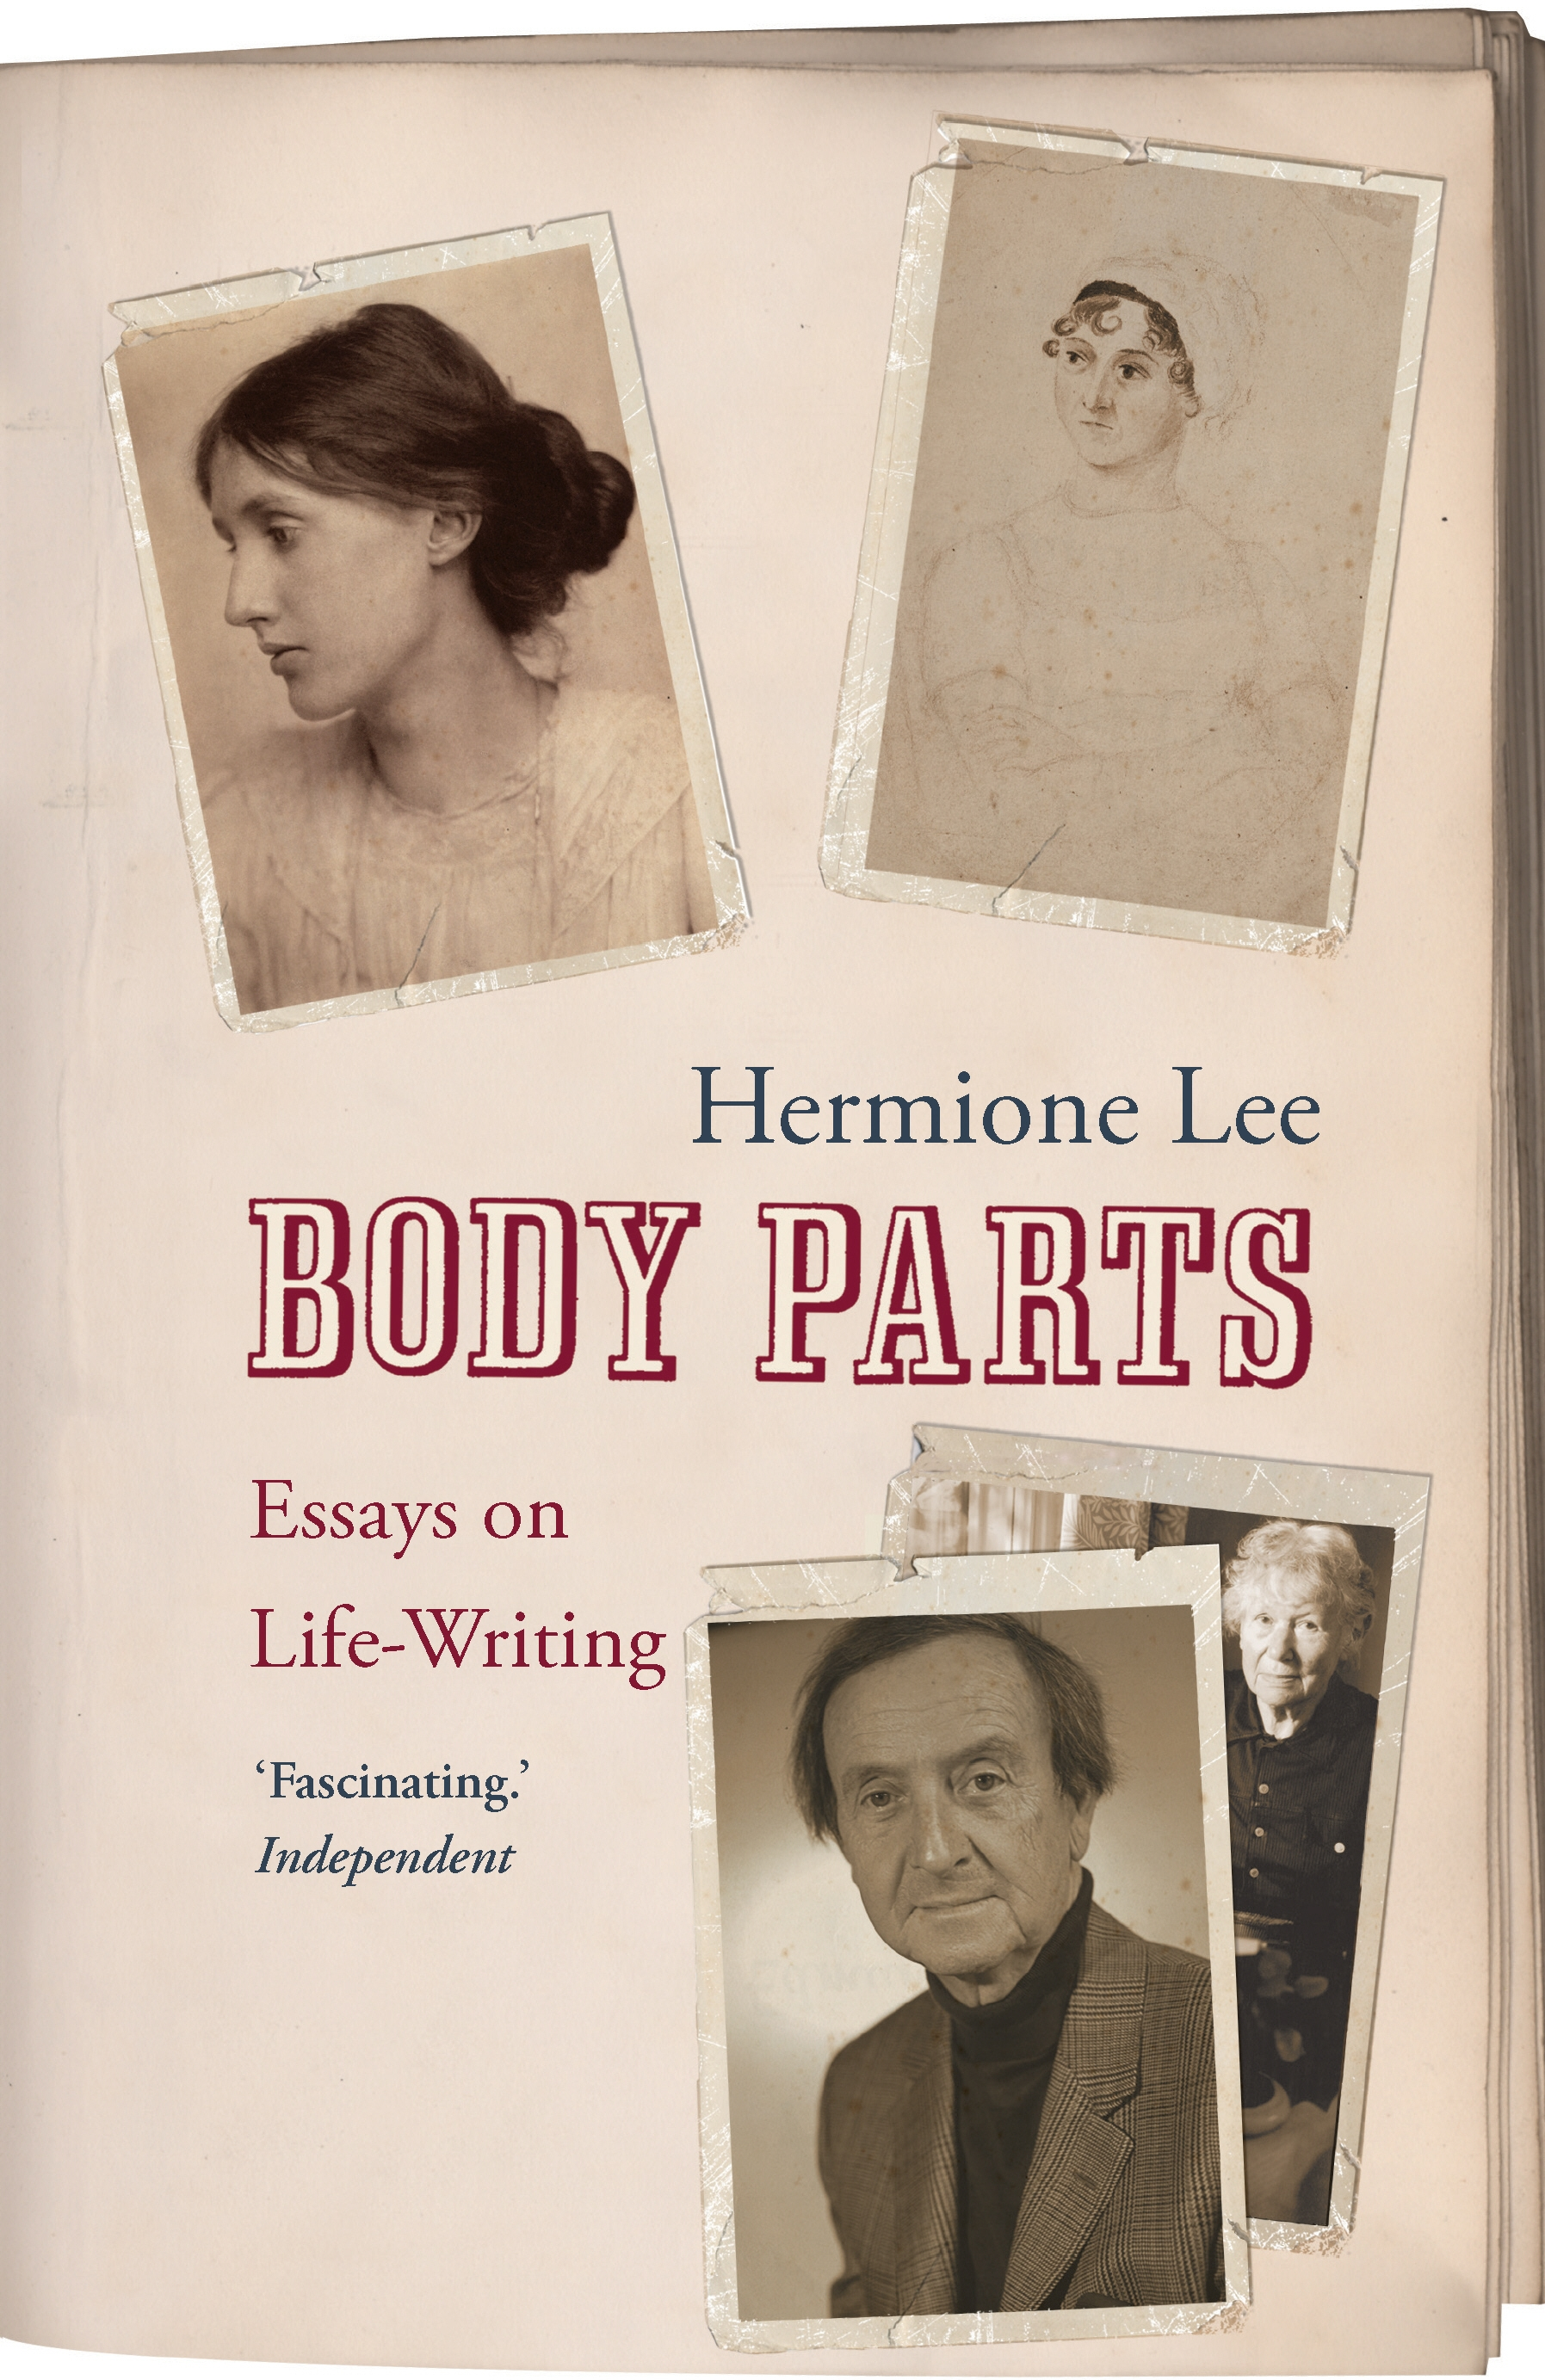 Body Parts: Essays on Life-Writing by Hermione Lee, ISBN: 9781844137466